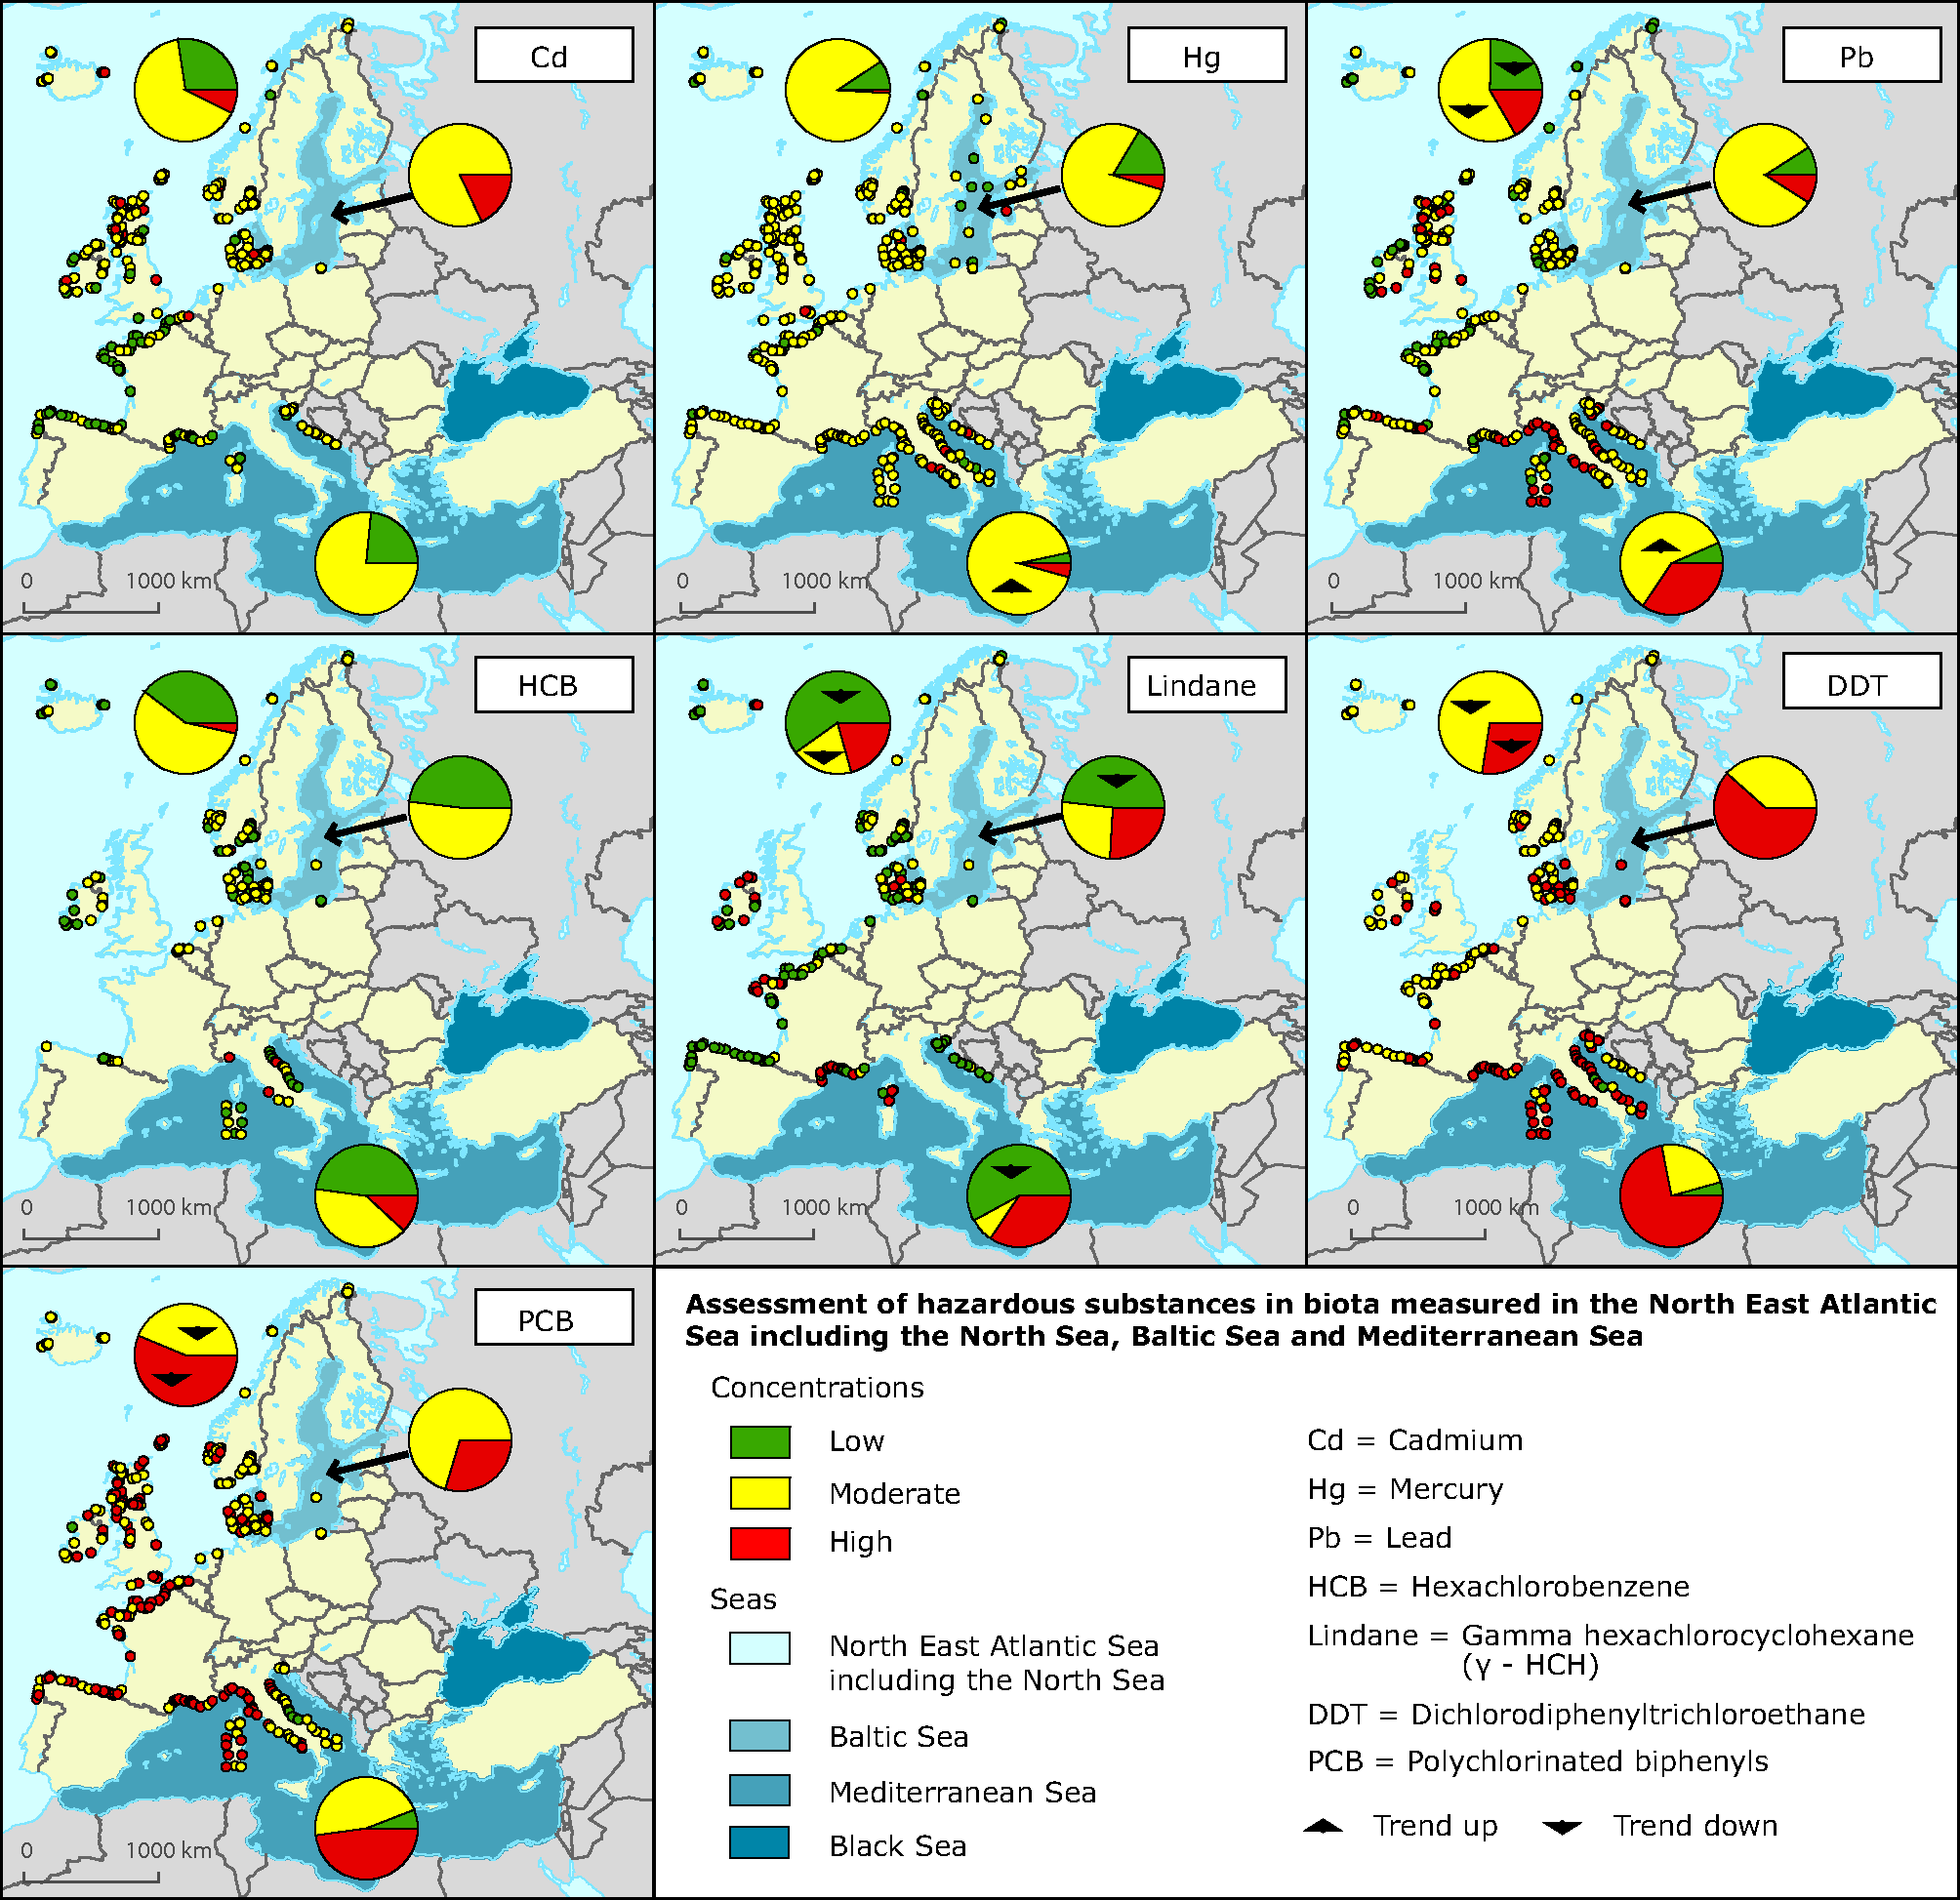 Aggregated assessment of hazardous substances in biota measured in the North East Atlantic, Baltic Sea and Mediterranean Sea; 1998-2010